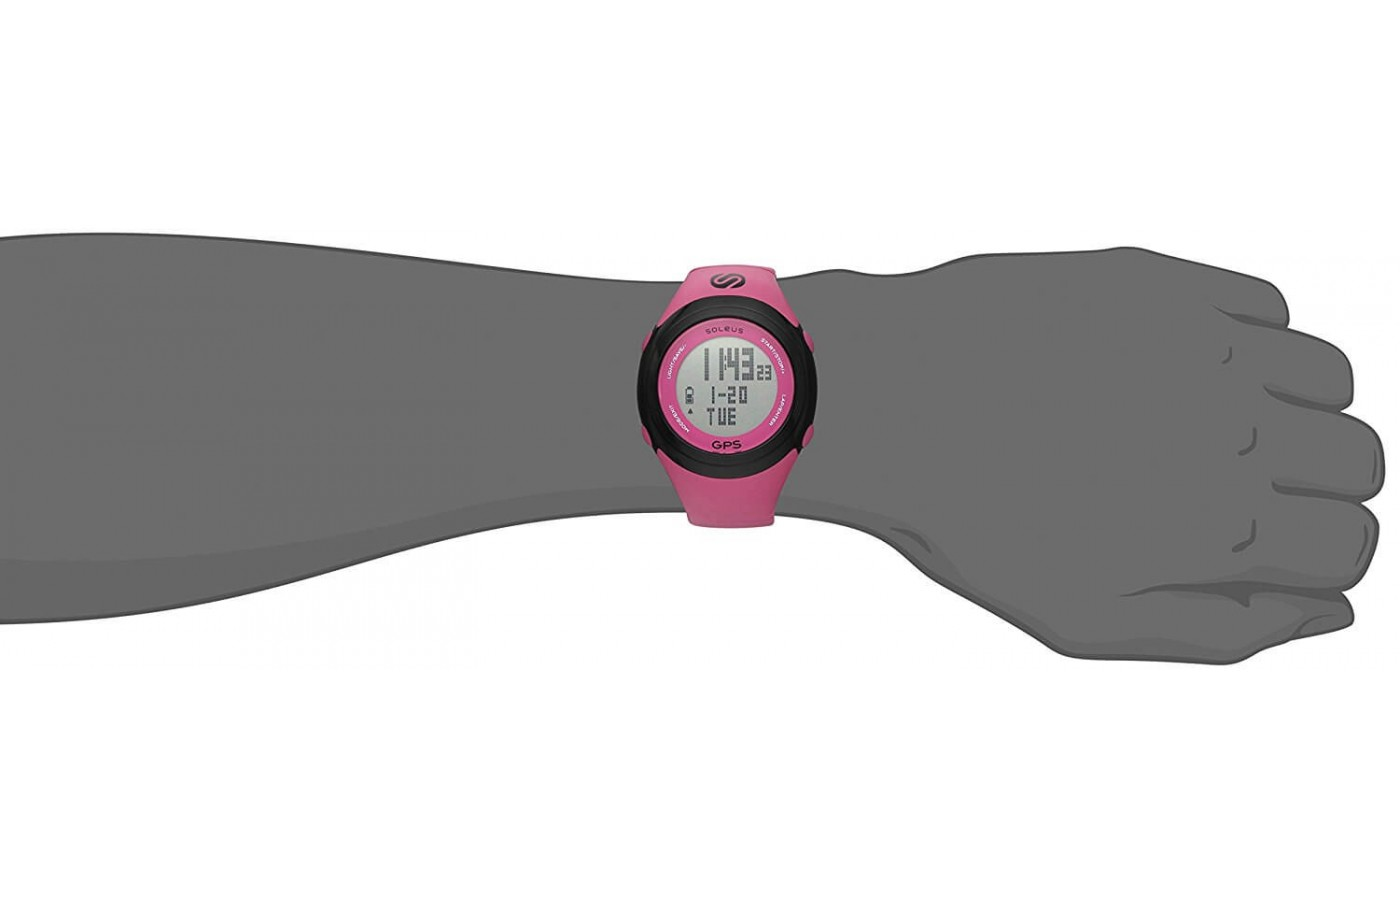 The Soleus GPS Fit 1.0 has a backlight